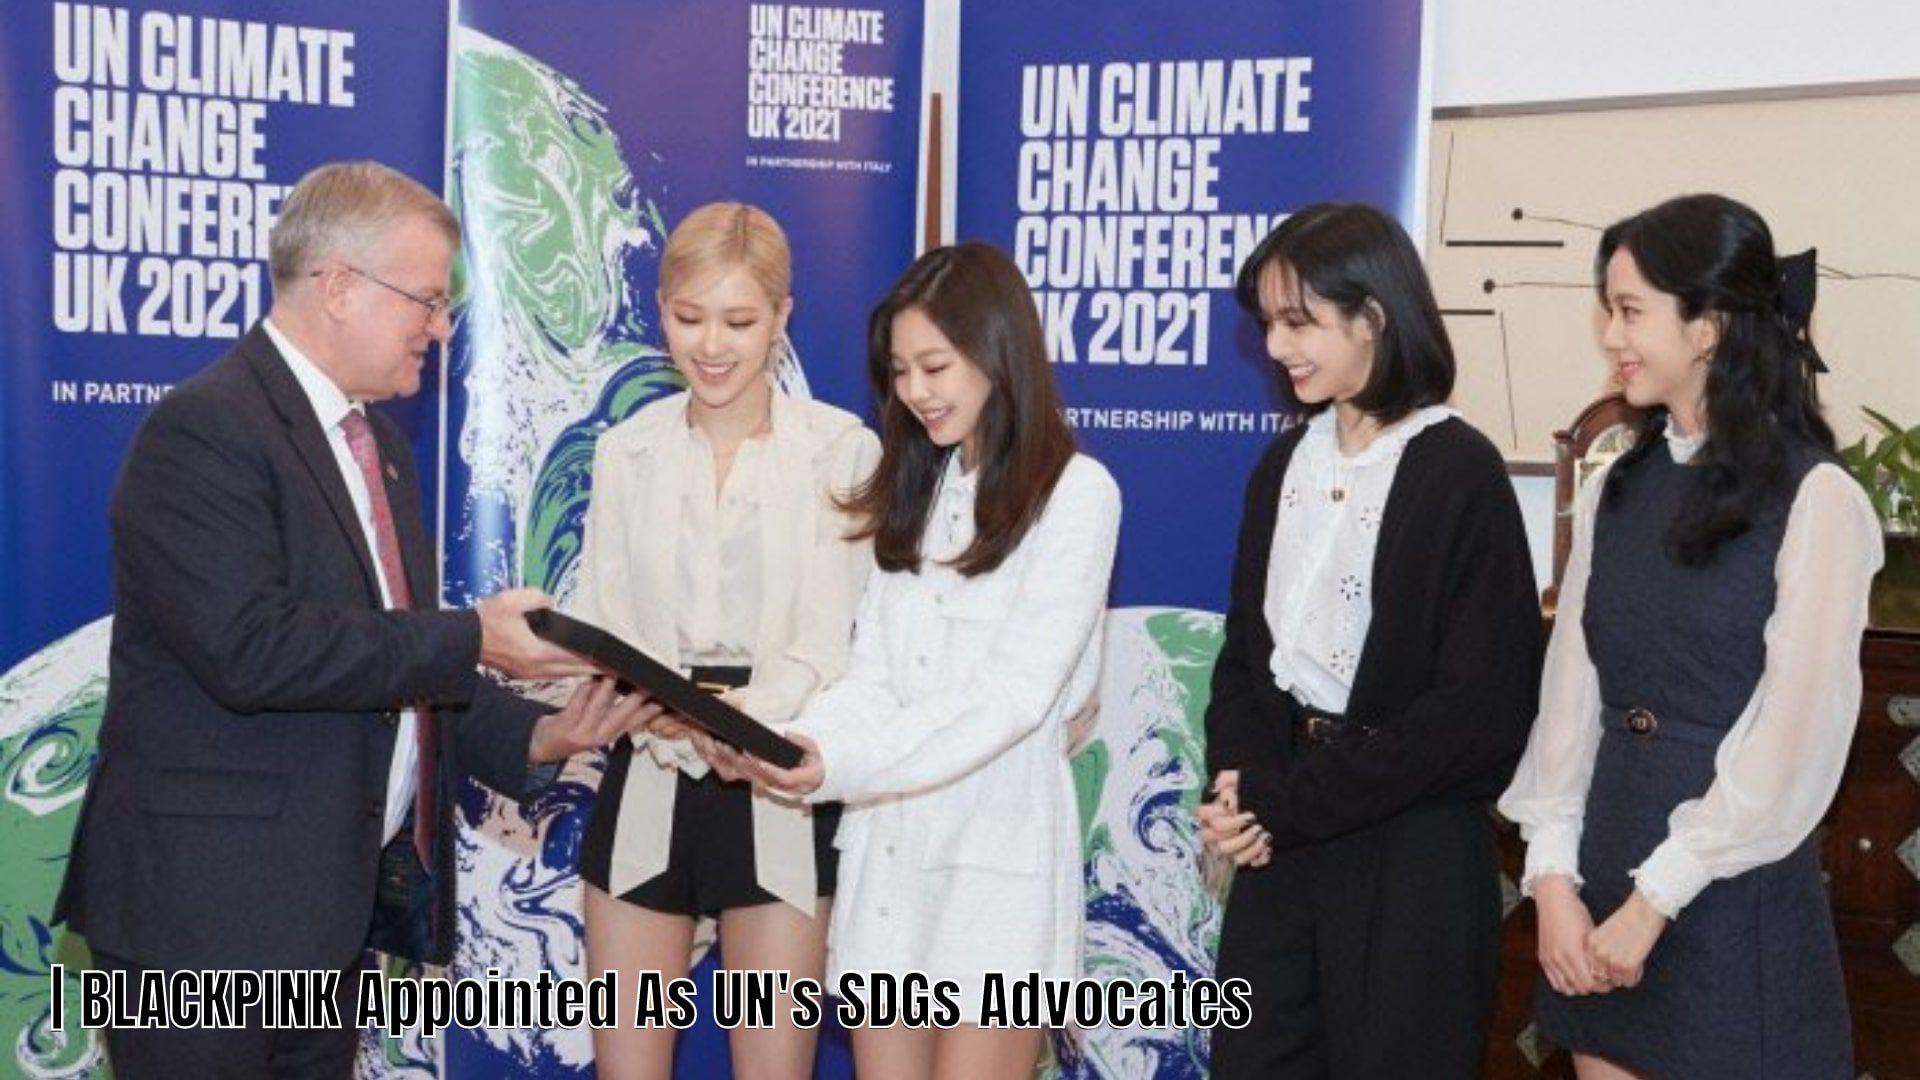 BLACKPINK Appointed as UN Sustainable Development Goals Advocates